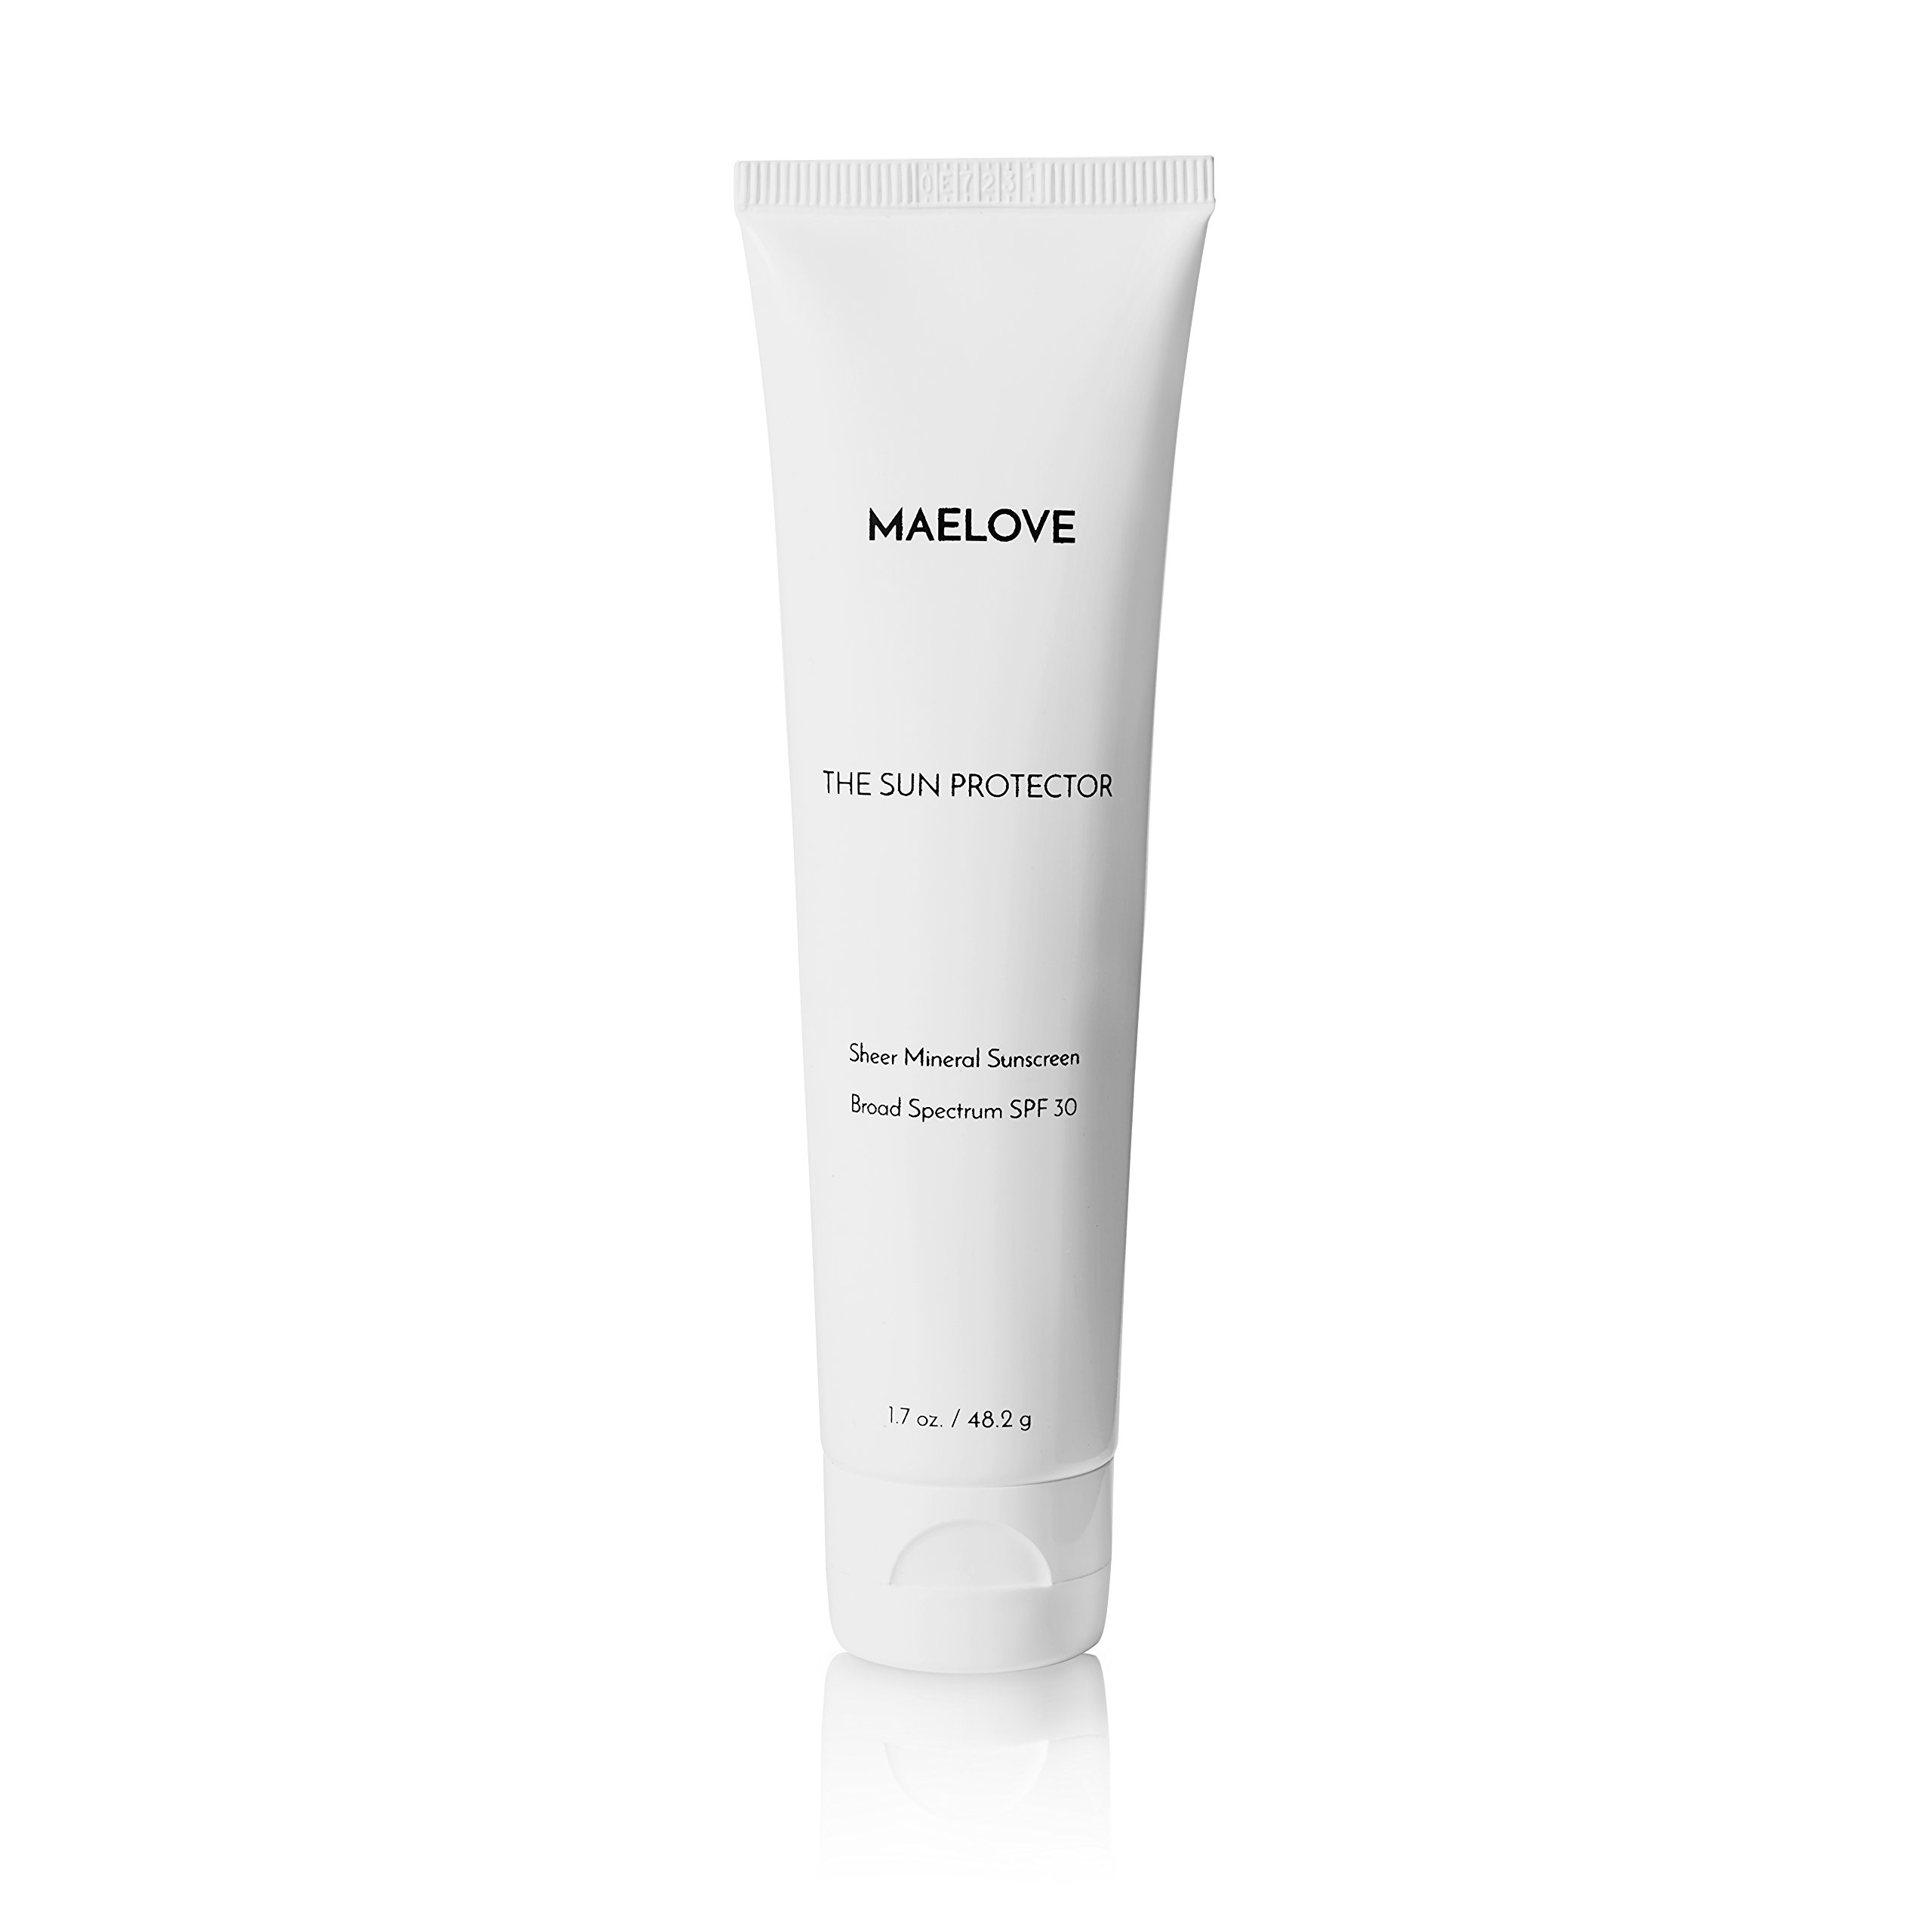 Sheer Mineral Zinc Broad Spectrum SPF 30 Sunscreen by Maelove. Vegan and Natural.